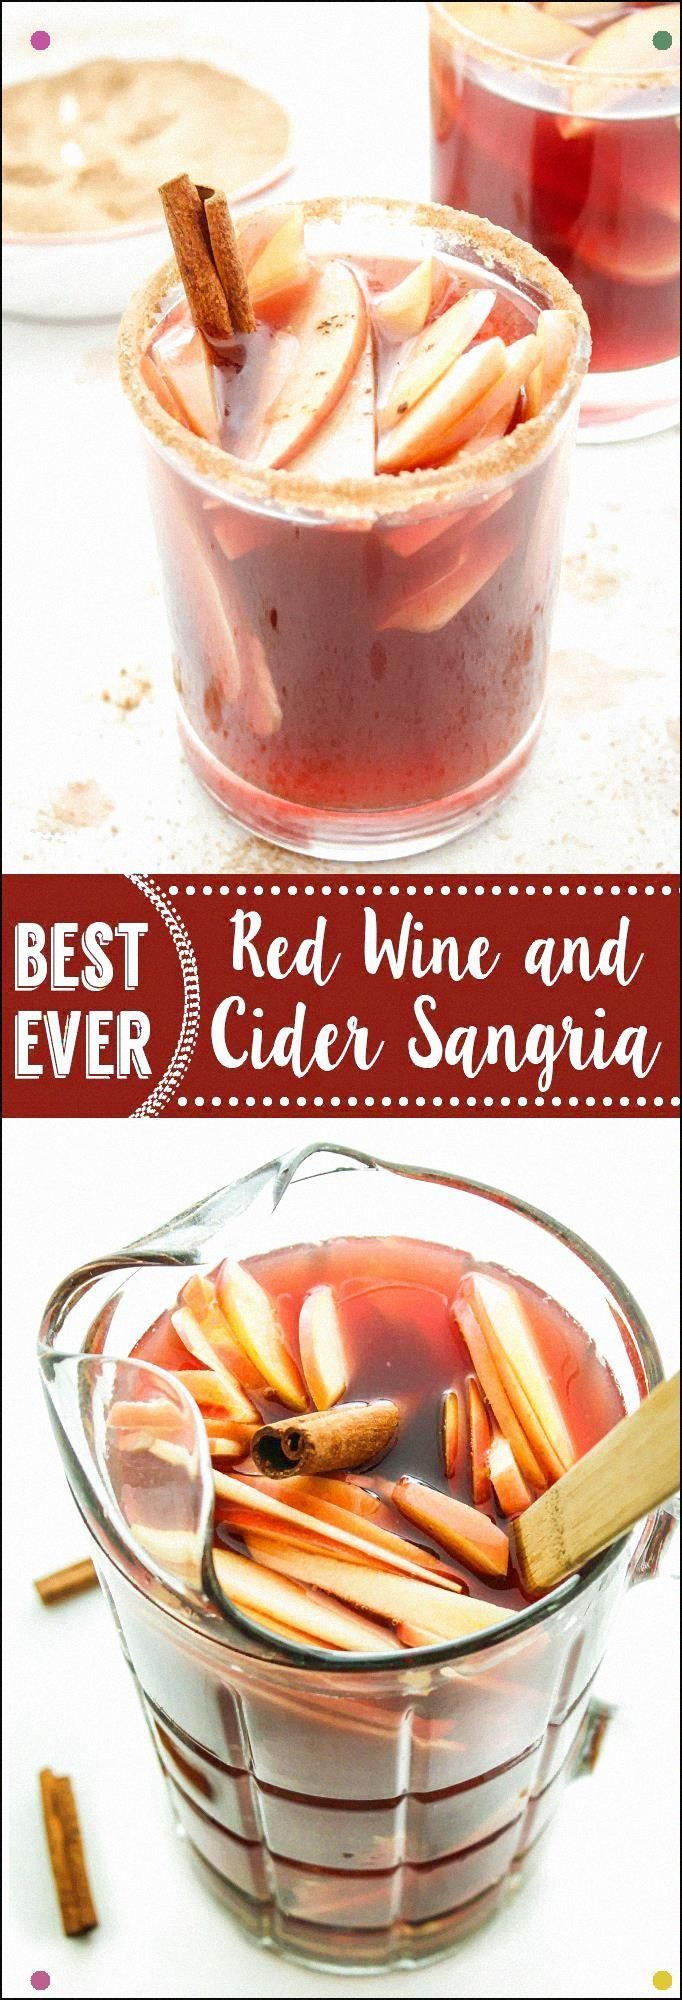 Red Wine Apple Cider Sangria This Sangria Recipe Is A Fall And Holiday Favorite Full Bodied Pinot Noir And Apple Cider Are Mixed Together And Poured Over Sliced Apples And Pears. #applecidersangriarecipe Red Wine Apple Cider Sangria This Sangria Recipe Is A Fall And Holiday Favorite Full Bodied Pinot Noir And Apple Cider Are Mixed Together And Poured Over Sliced Apples And Pears. #applecidersangriarecipe